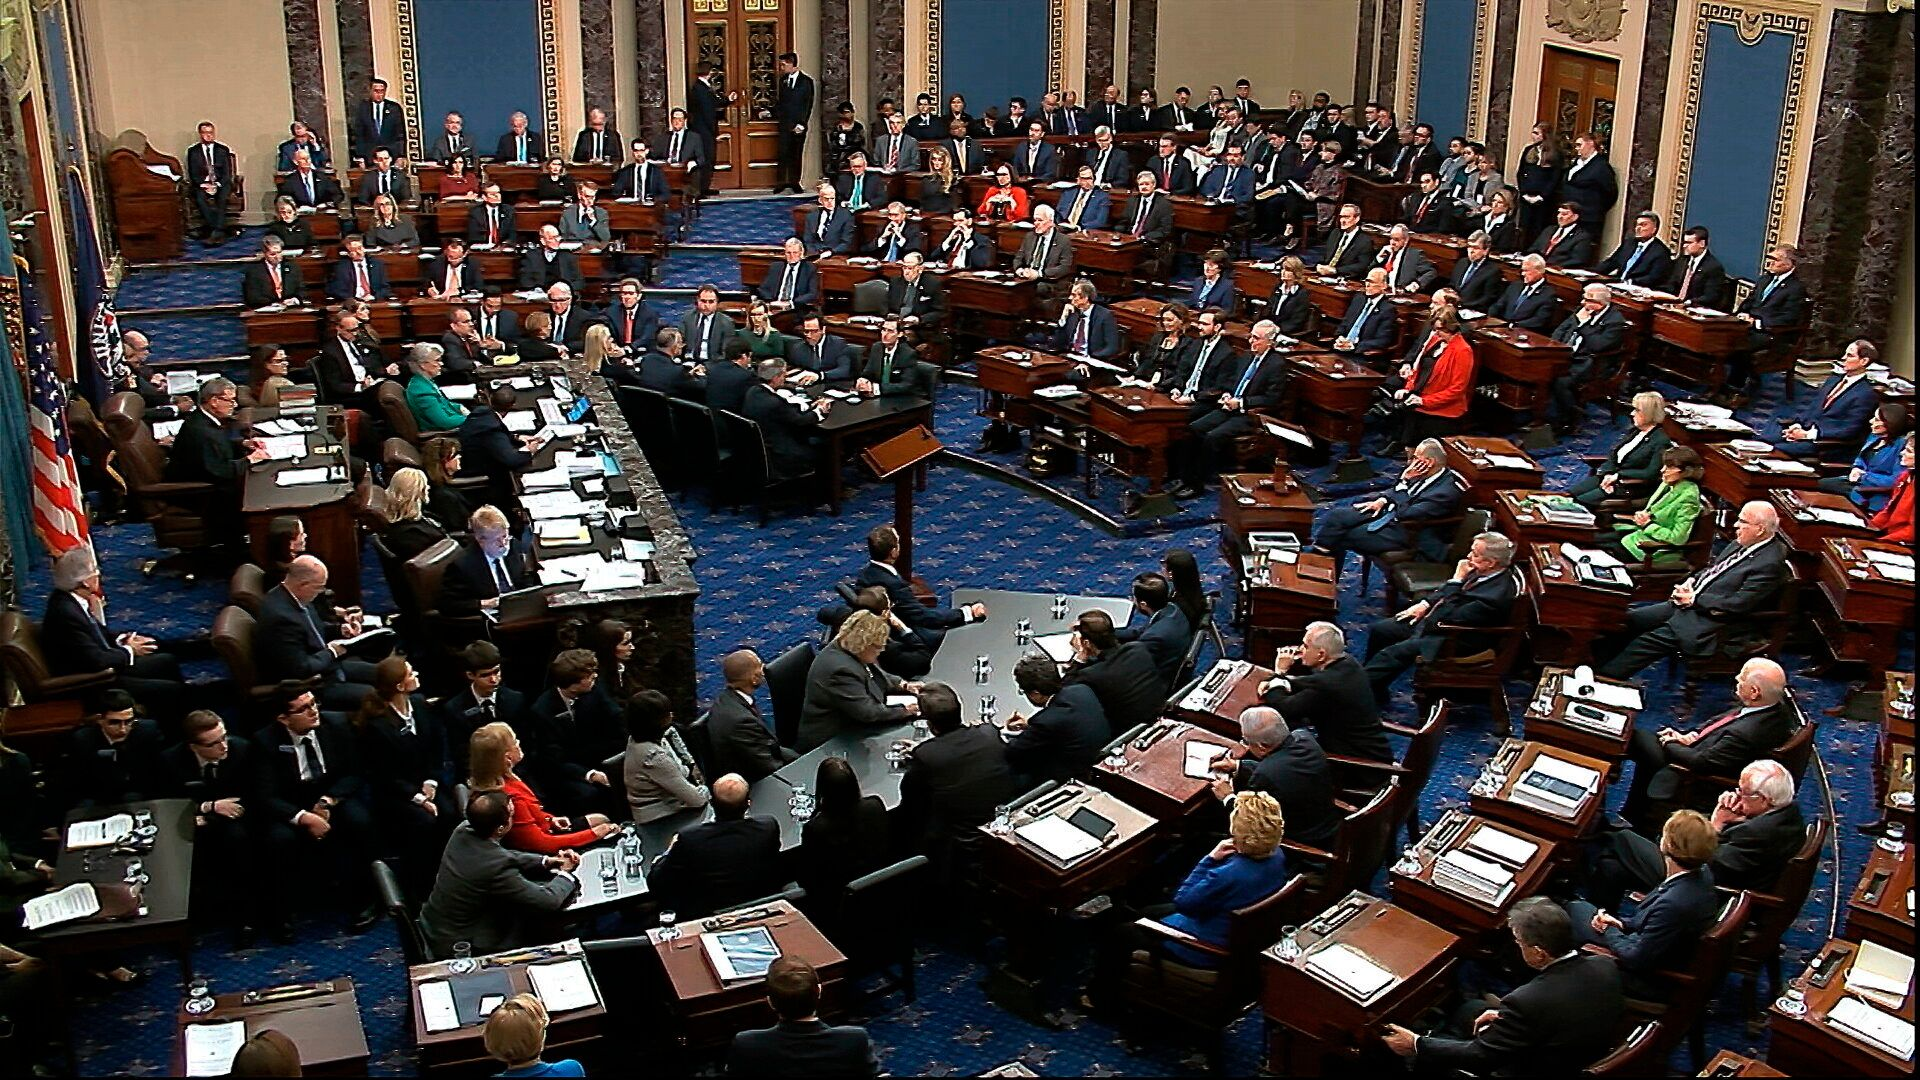 The Senate voting on Trump's first impeachment in February 2020. Sen. Mitt Romney (R-Utah) cast the lone vote to convict by a